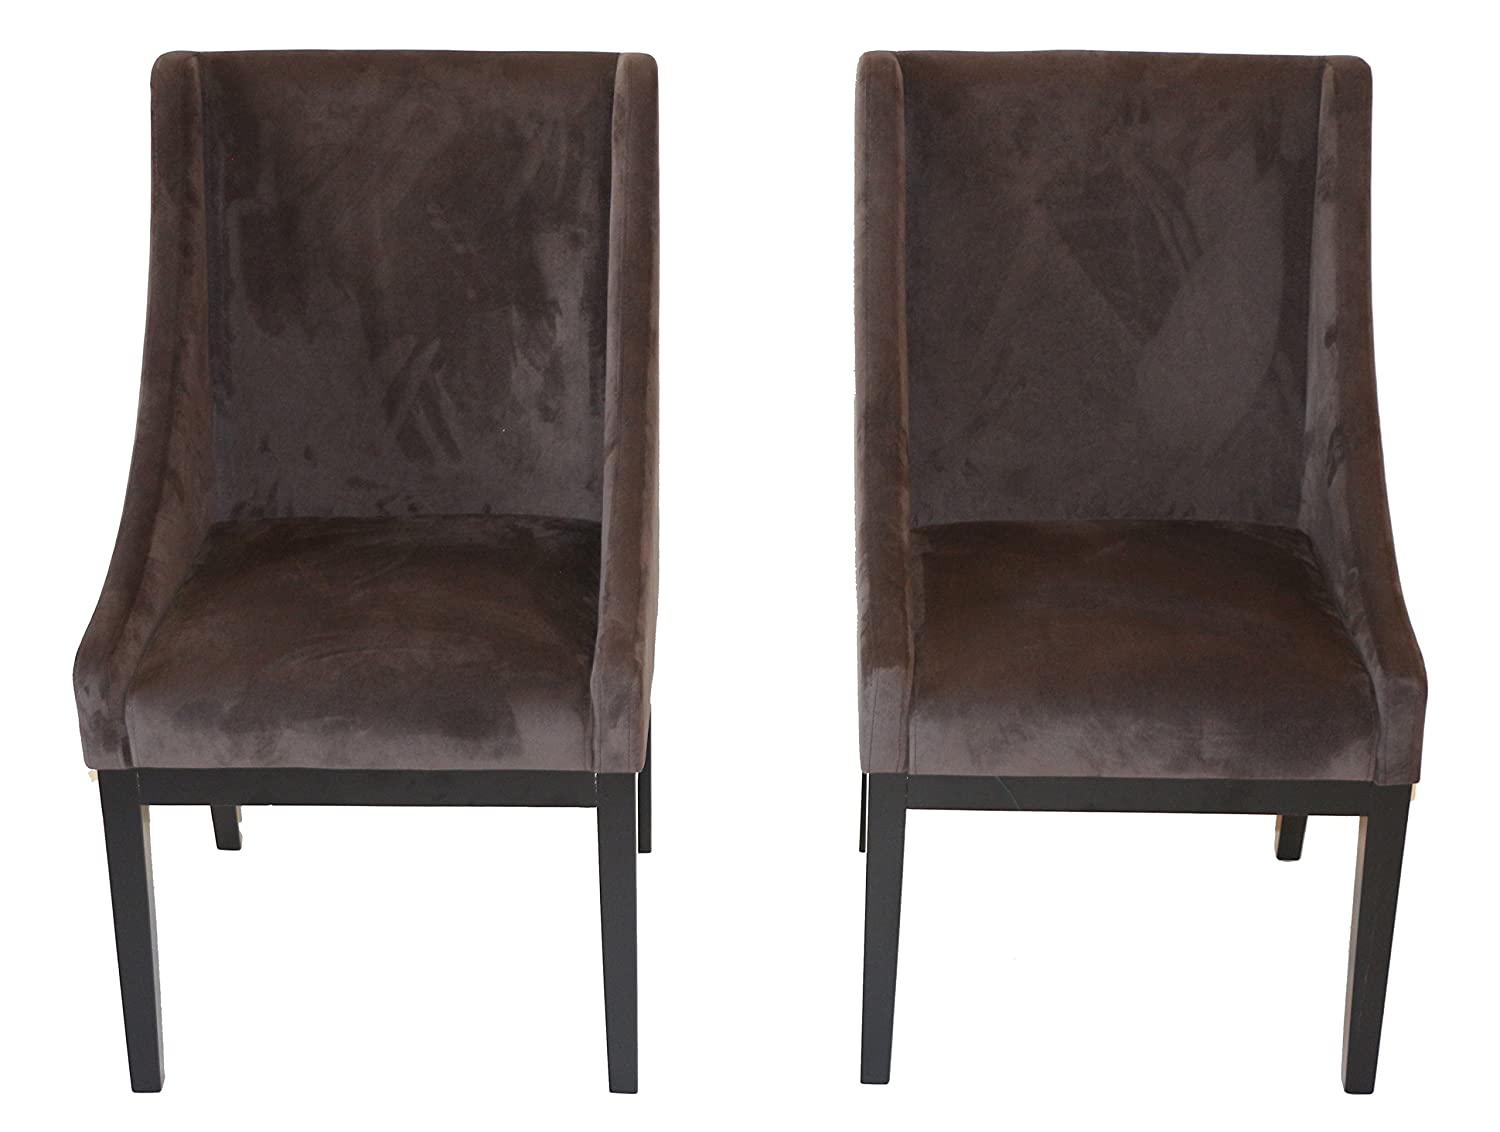 Modern Furniture Chairs. Amazon com  Home Life Contemporary Microfiber Modern Sofa Arm Chairs Set of 2 Dark Brown Kitchen Dining